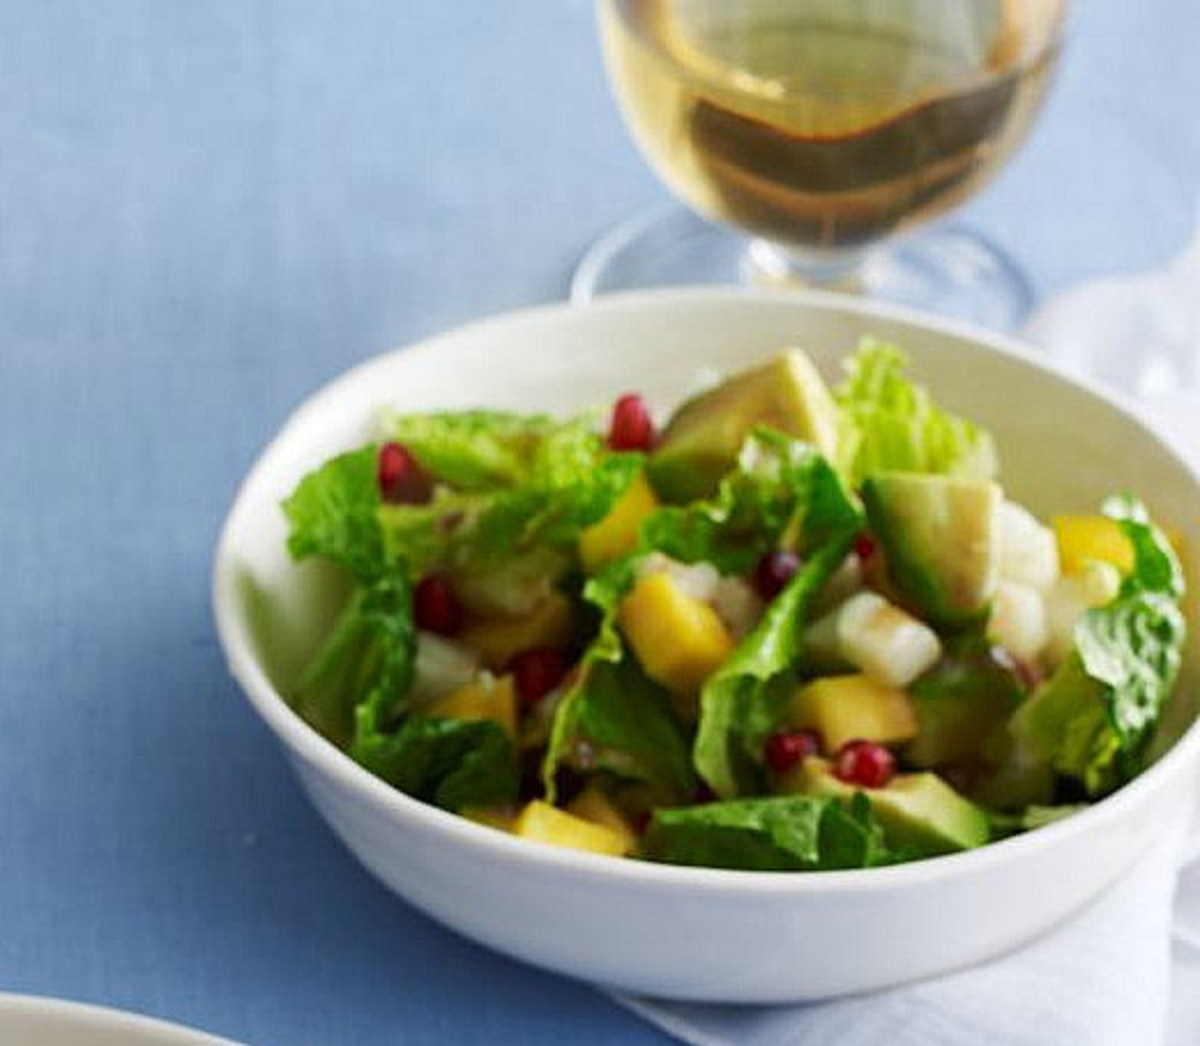 Pomegranate Salad with Berry Vinaigrette